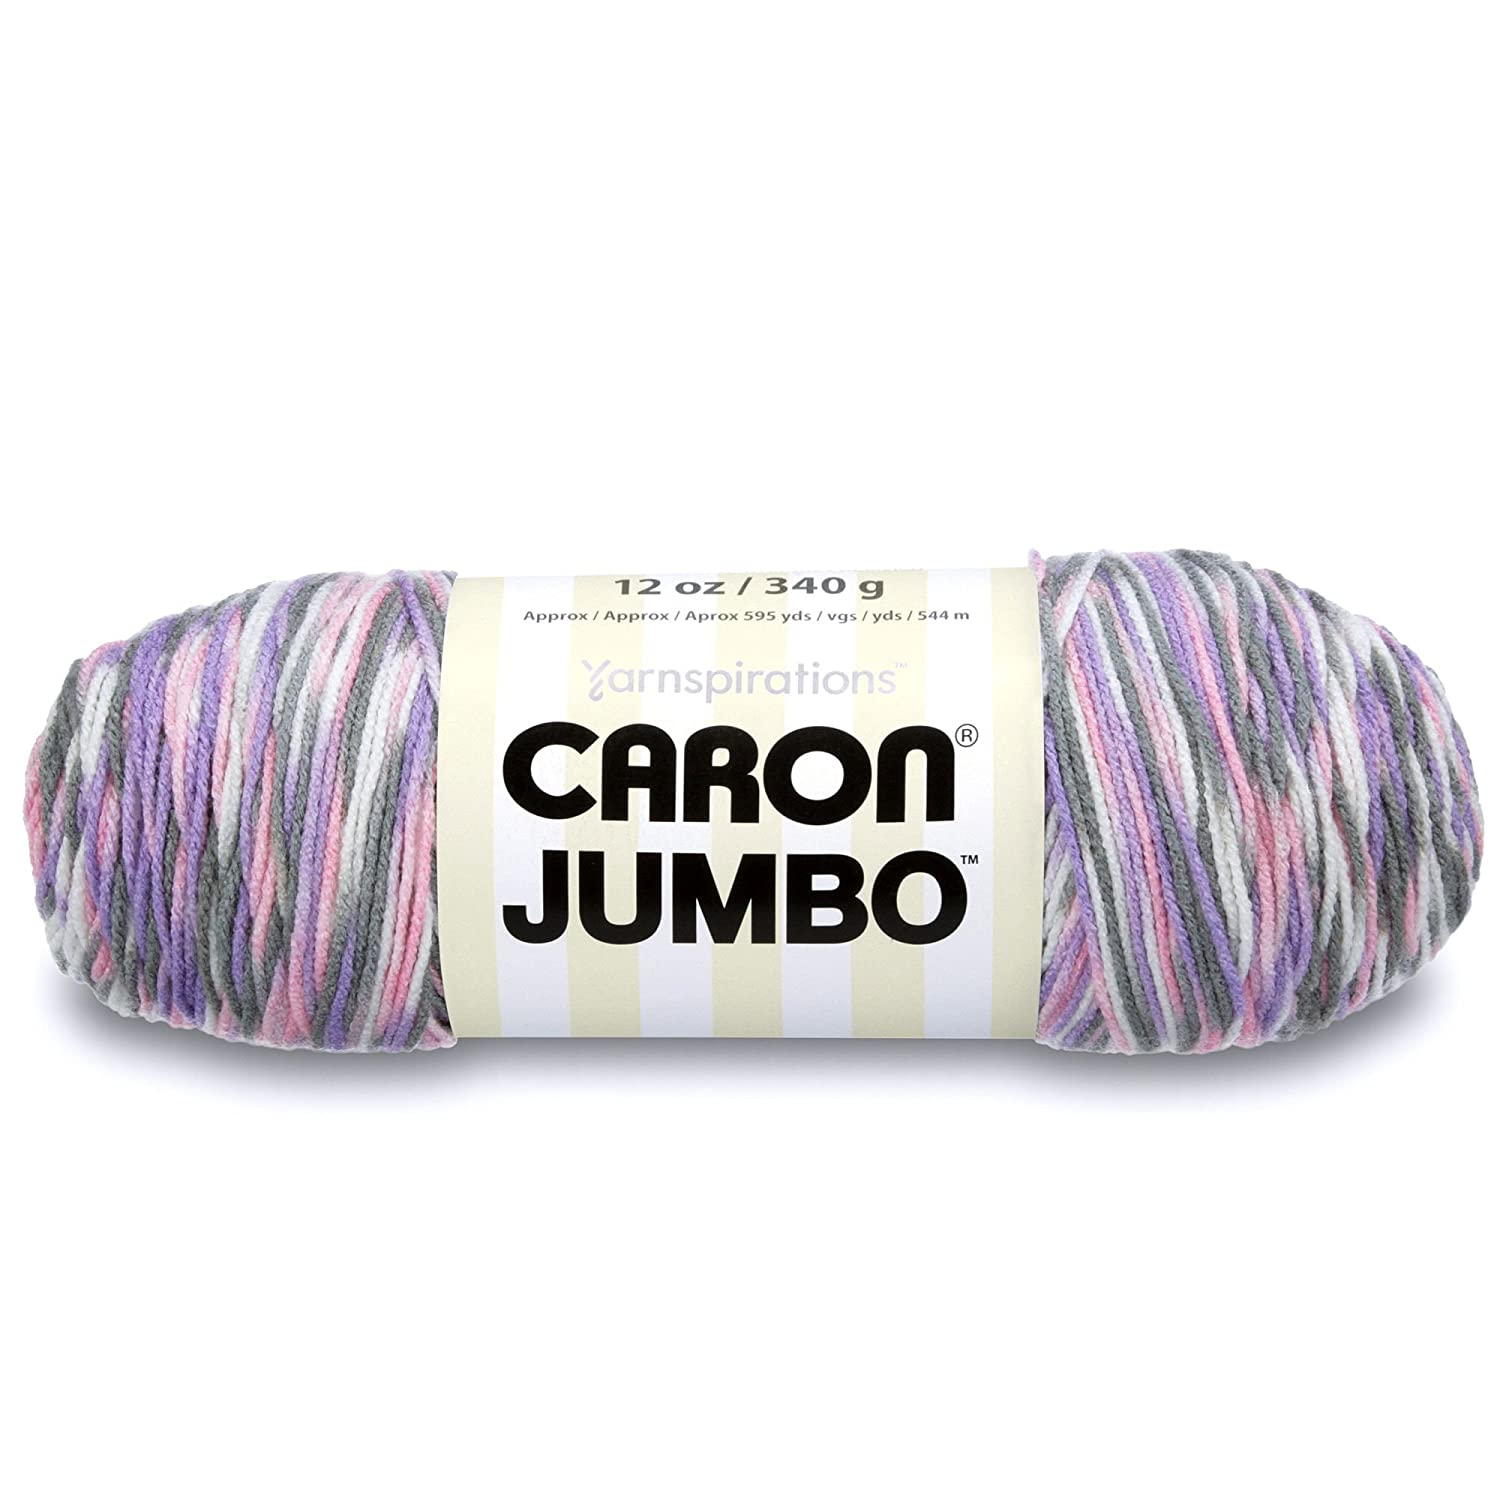 Caron Jumbo Ombre Yarn -Medium Worsted Gauge 4 thickness of the yarn -100% Acrylic- 12 oz - Peacock - Machine Wash & Dry Spinrite 327699